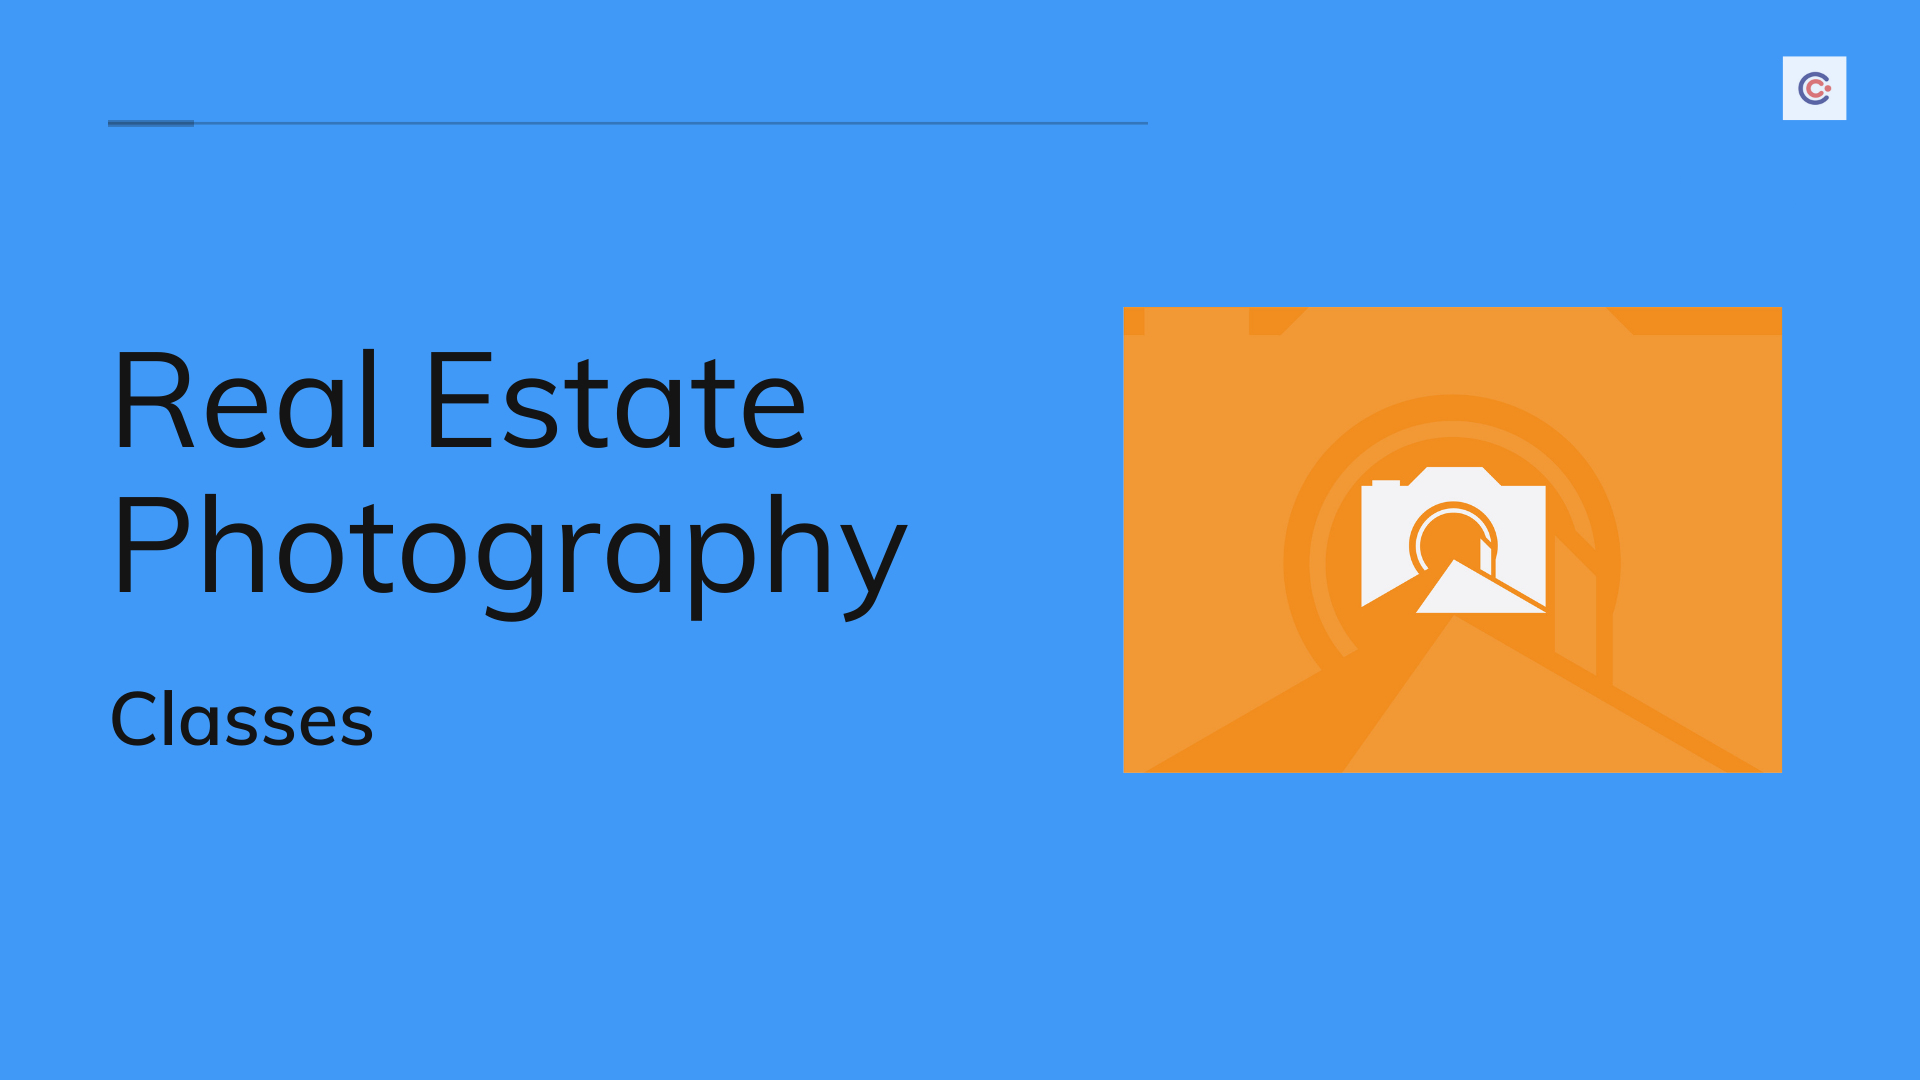 7 Best Real Estate Photography Classes - Learn Real Estate Photography Online